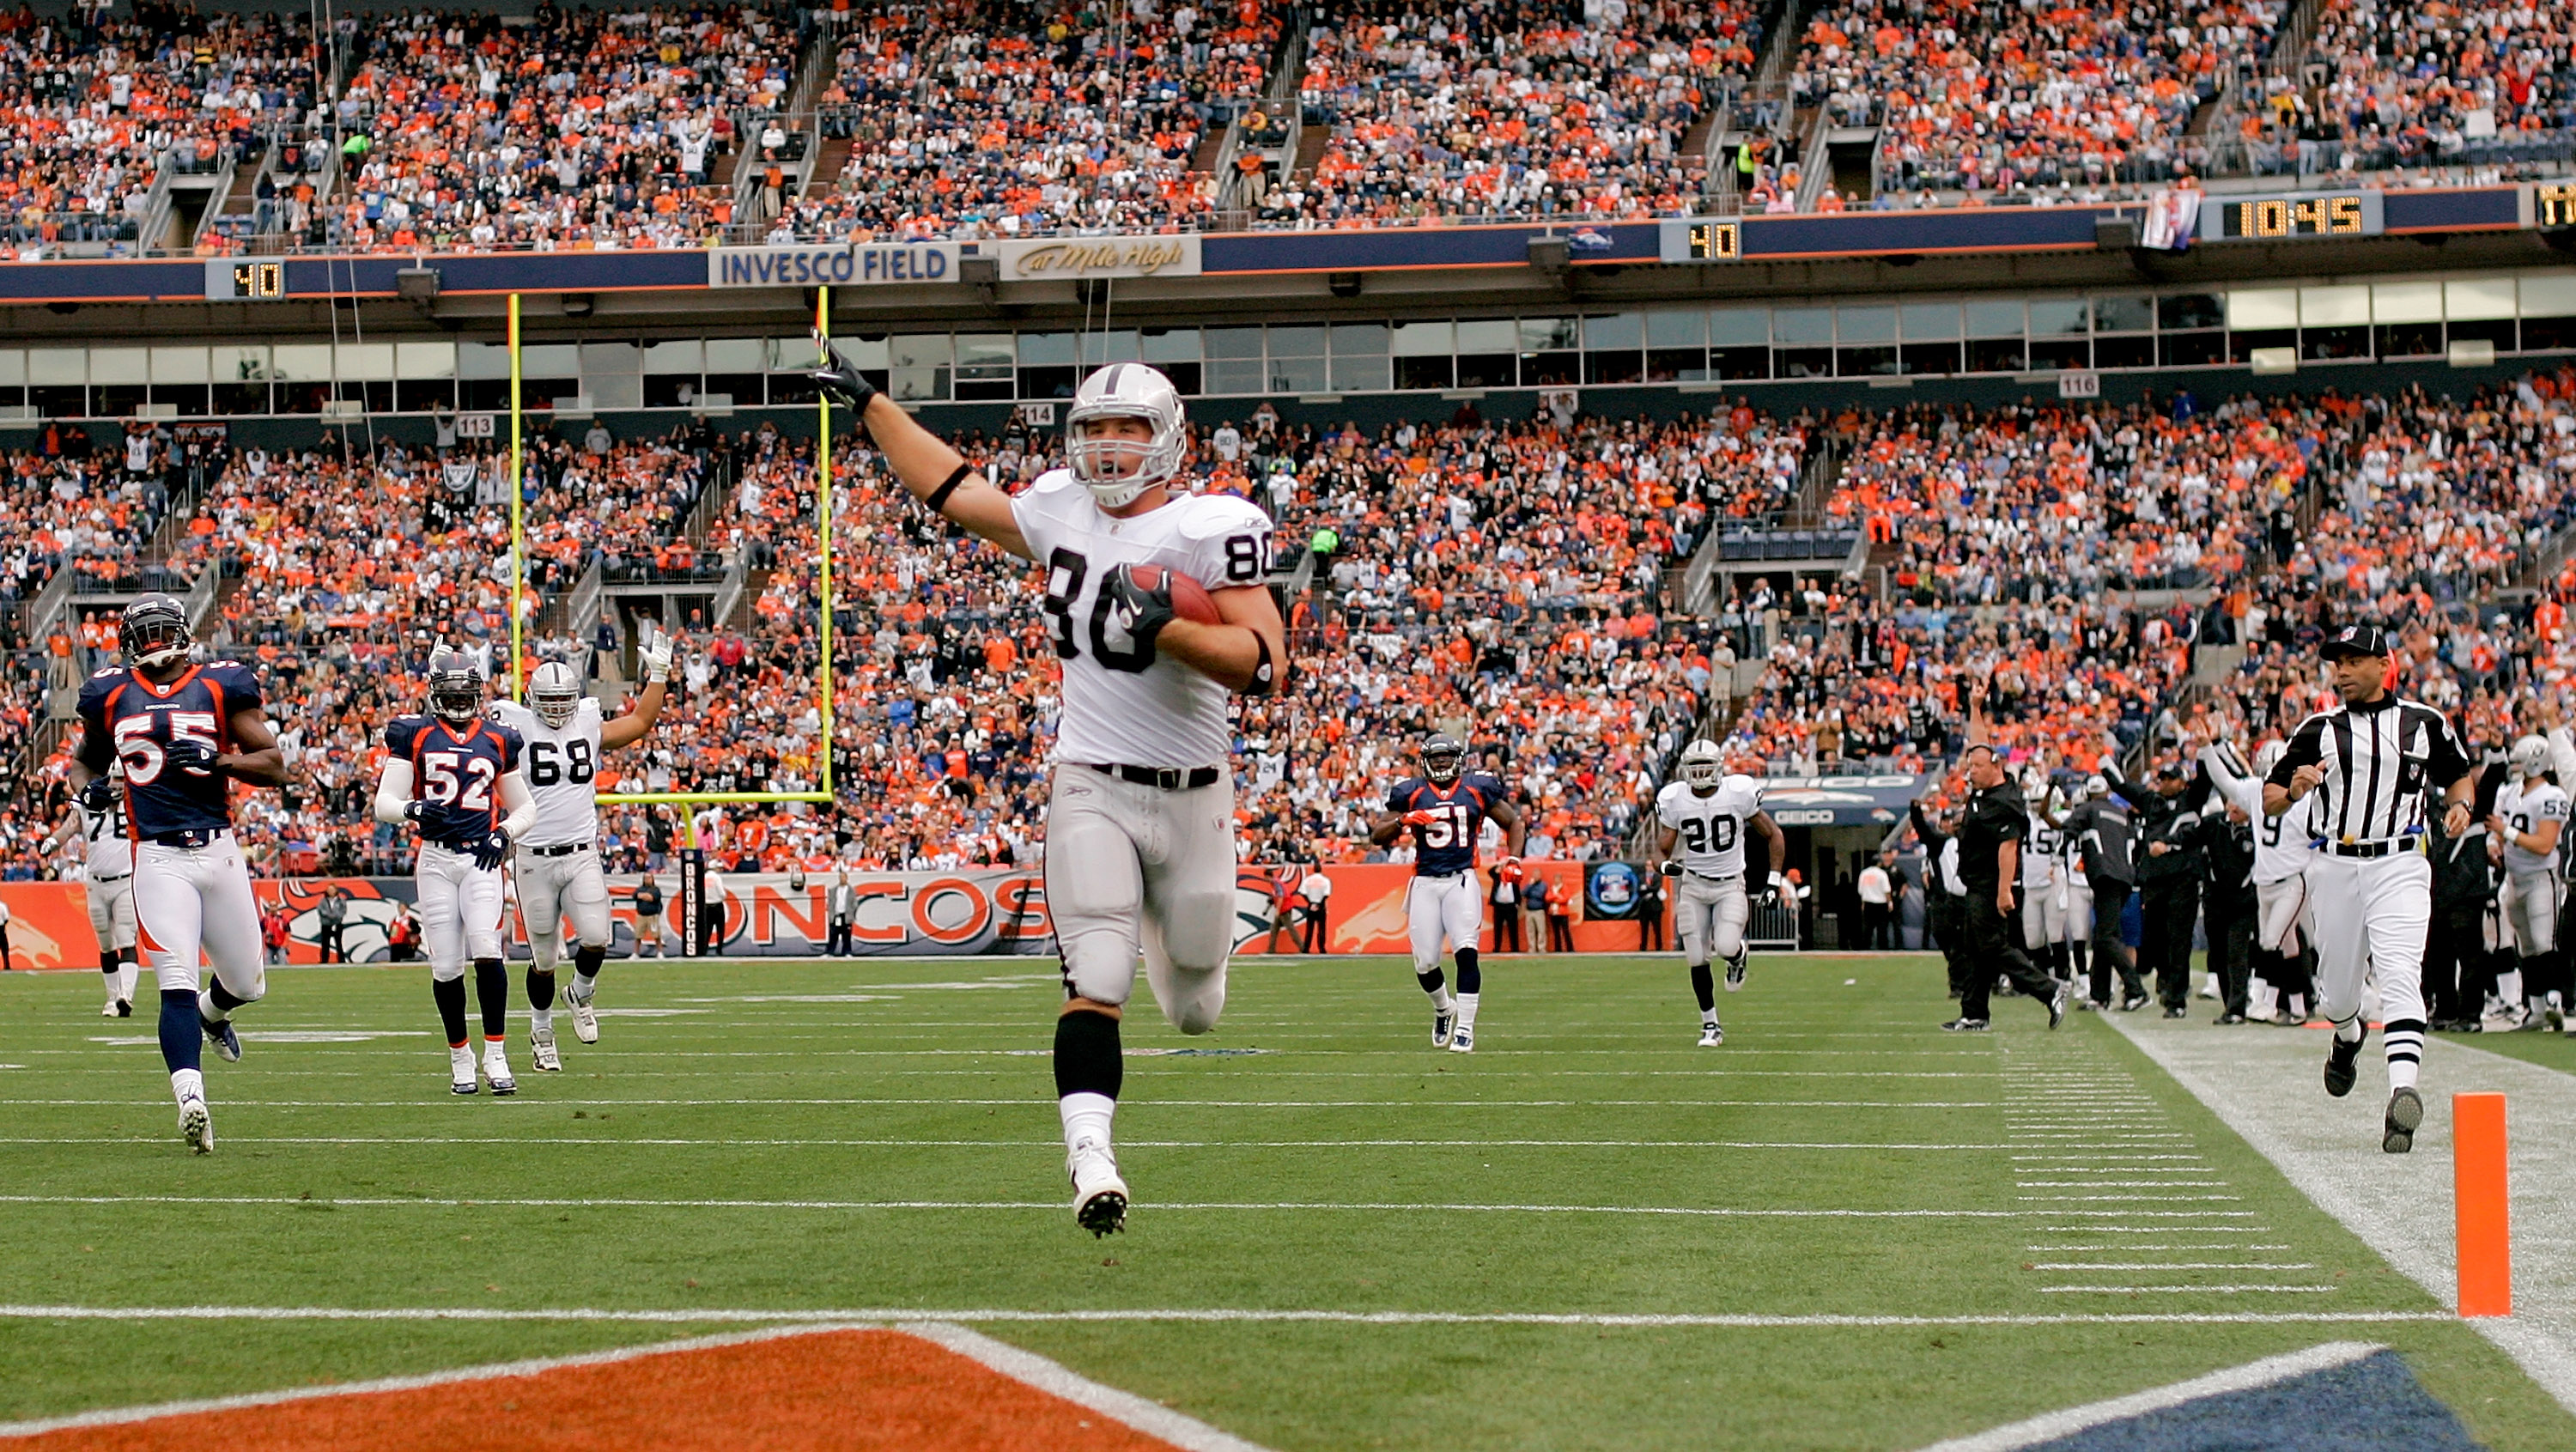 DENVER - OCTOBER 24:  Tight end Zach Miller #80 of the Oakland Raiders strides into the endzone in the first quarter against the Denver Broncos at INVESCO Field at Mile High on October 24, 2010 in Denver, Colorado. (Photo by Justin Edmonds/Getty Images)